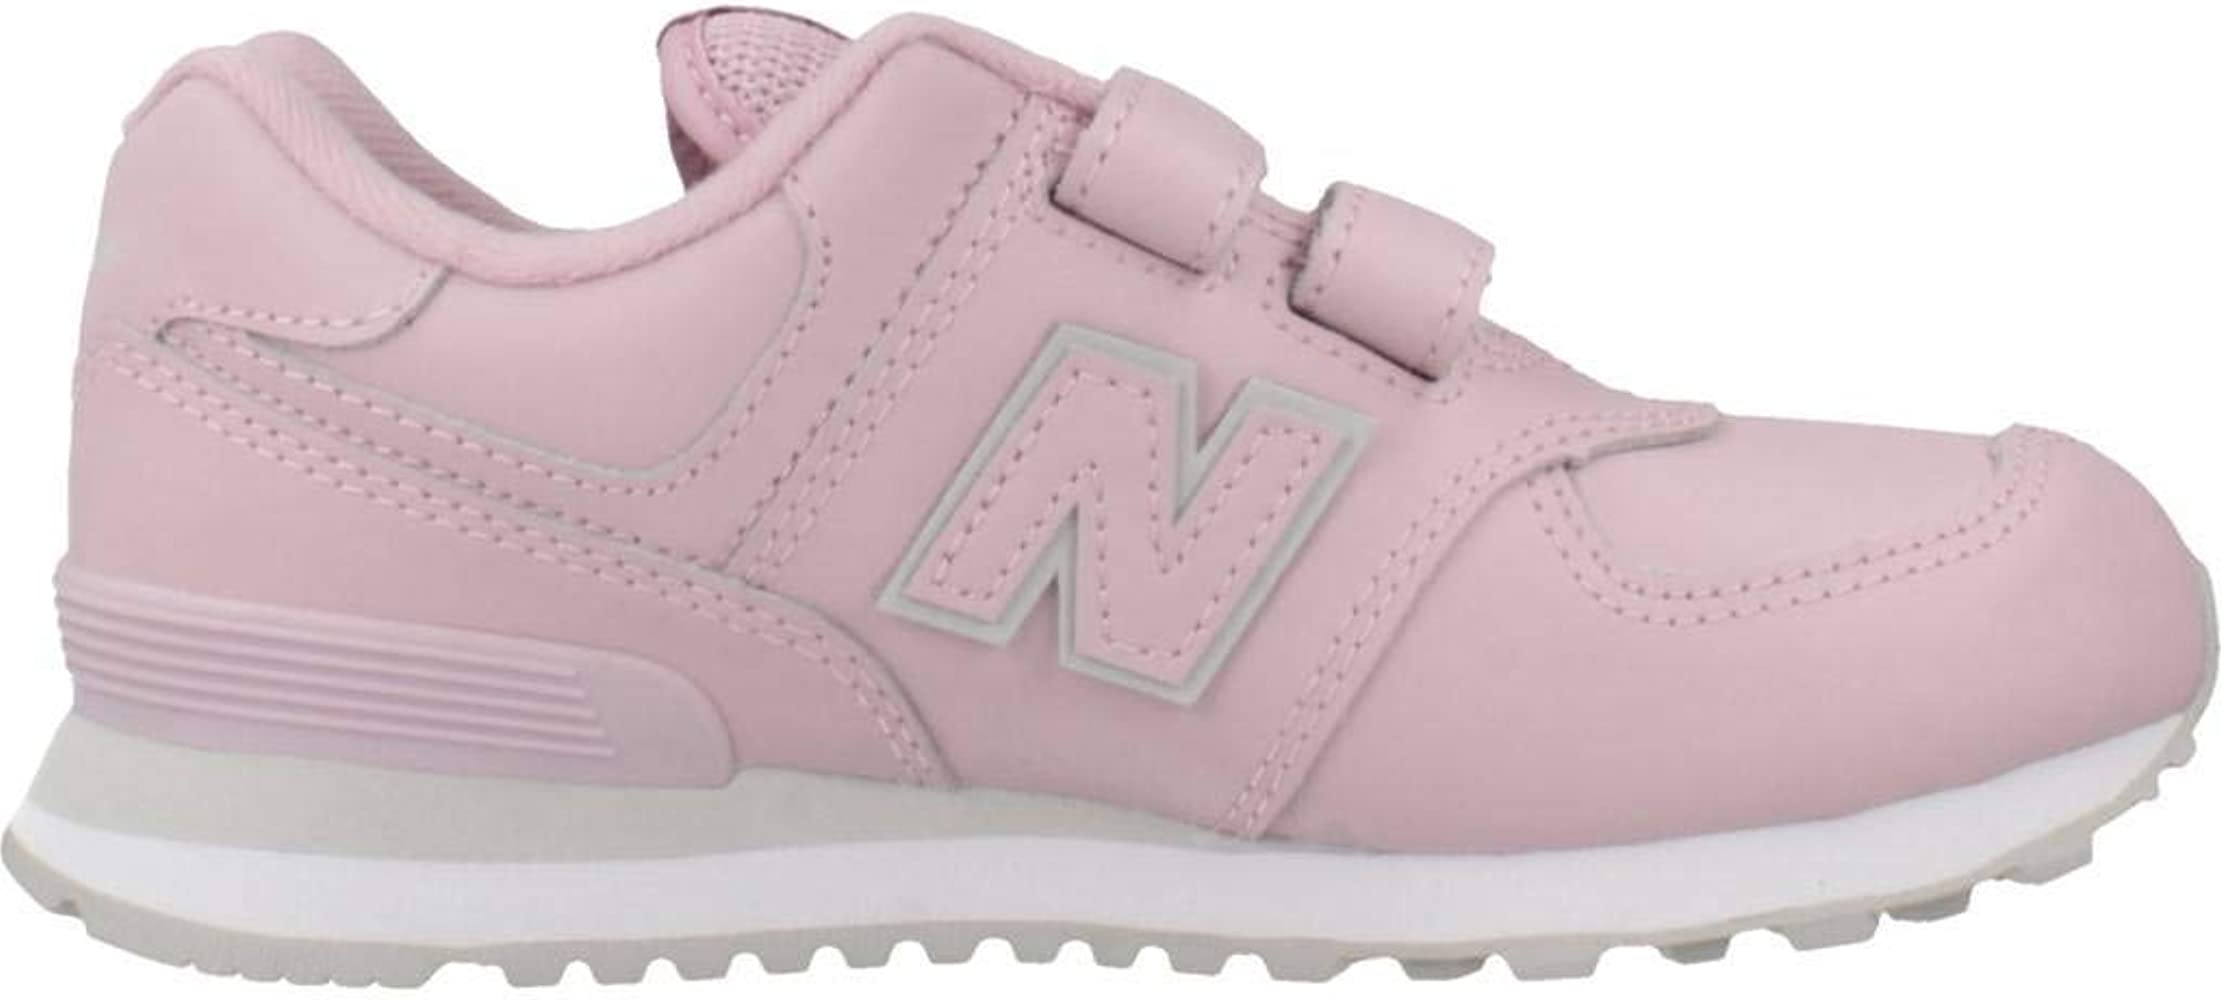 Zapatillas de Niña New Balance YV574ERP Rosa 28 Rosa: Amazon